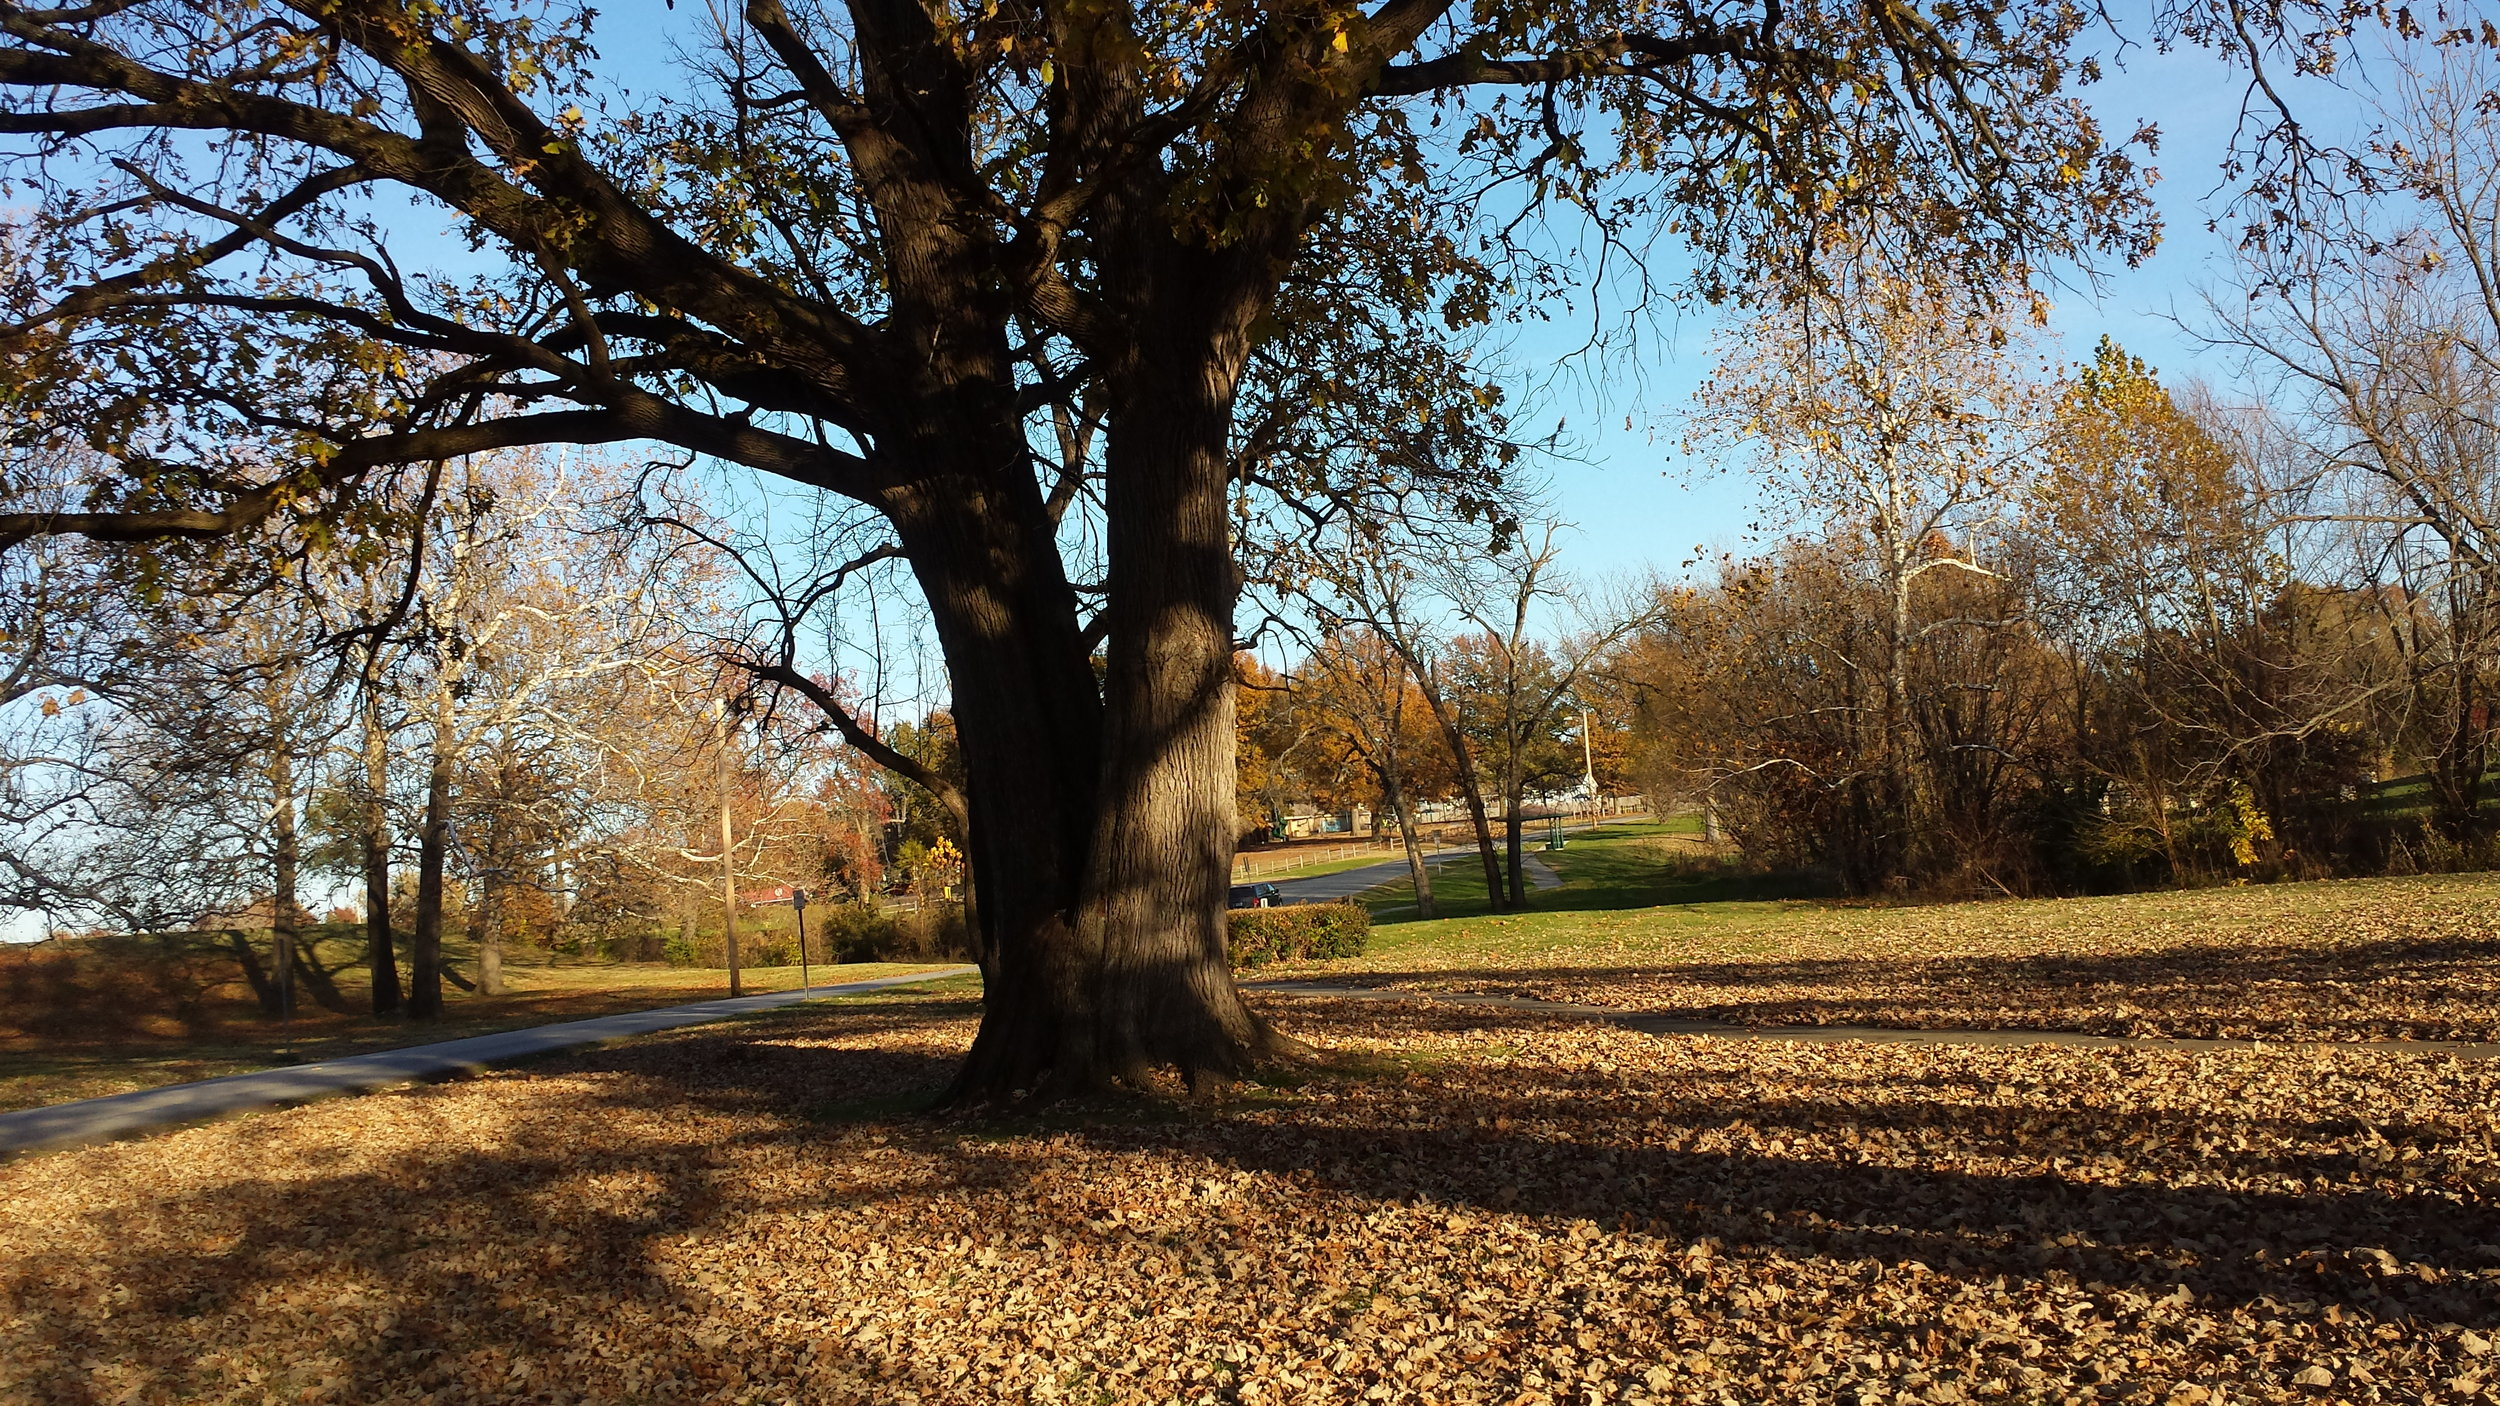 A mature Trophy Oak tree in Kansas. The Trophy Oak is in the burr oak family.